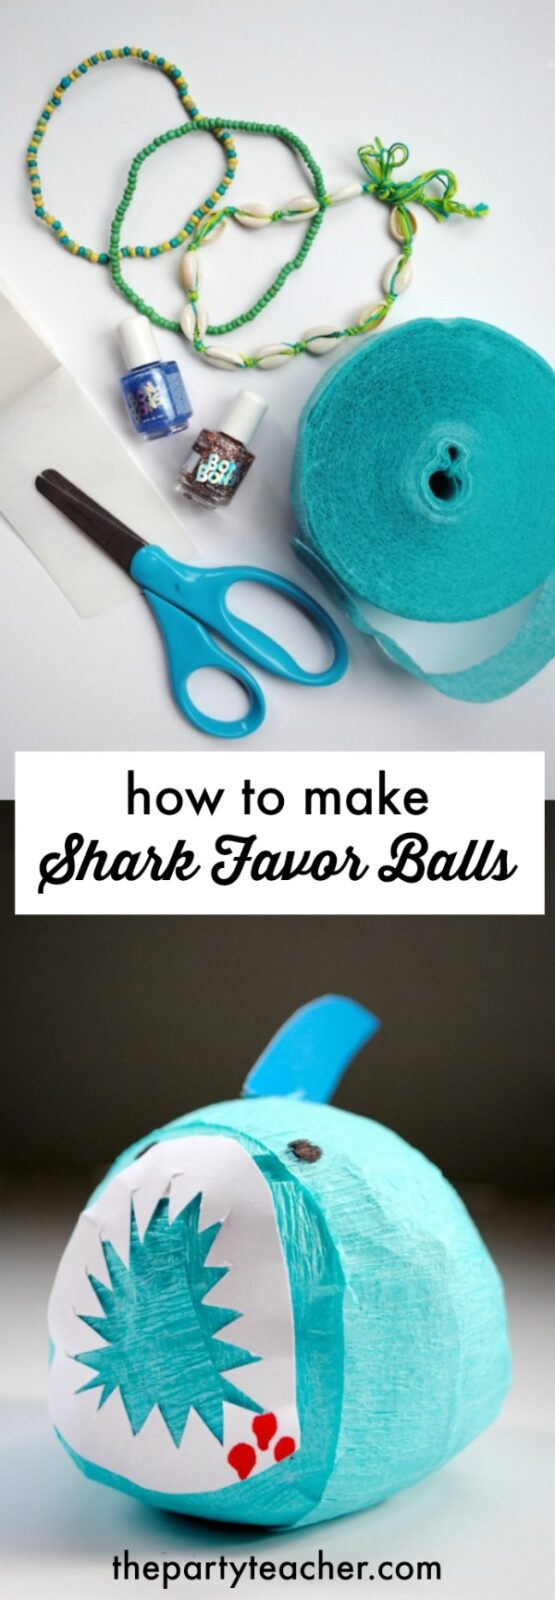 How to make shark favor balls by The Party Teacher